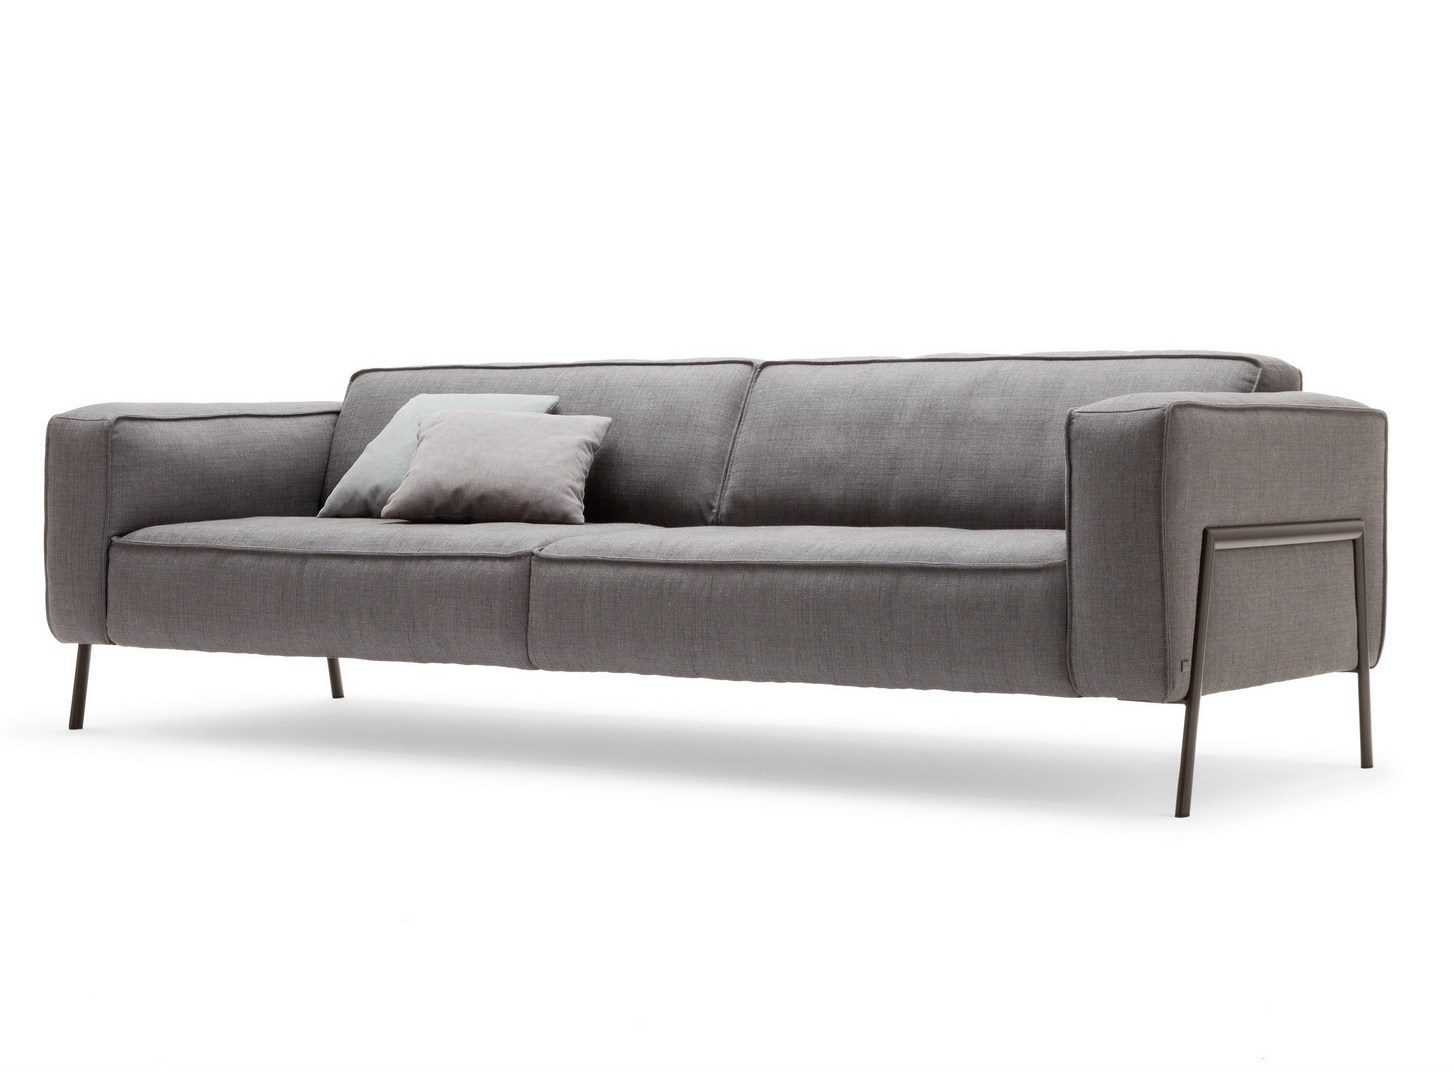 sofa bacio by rolf benz design cuno frommherz. Black Bedroom Furniture Sets. Home Design Ideas